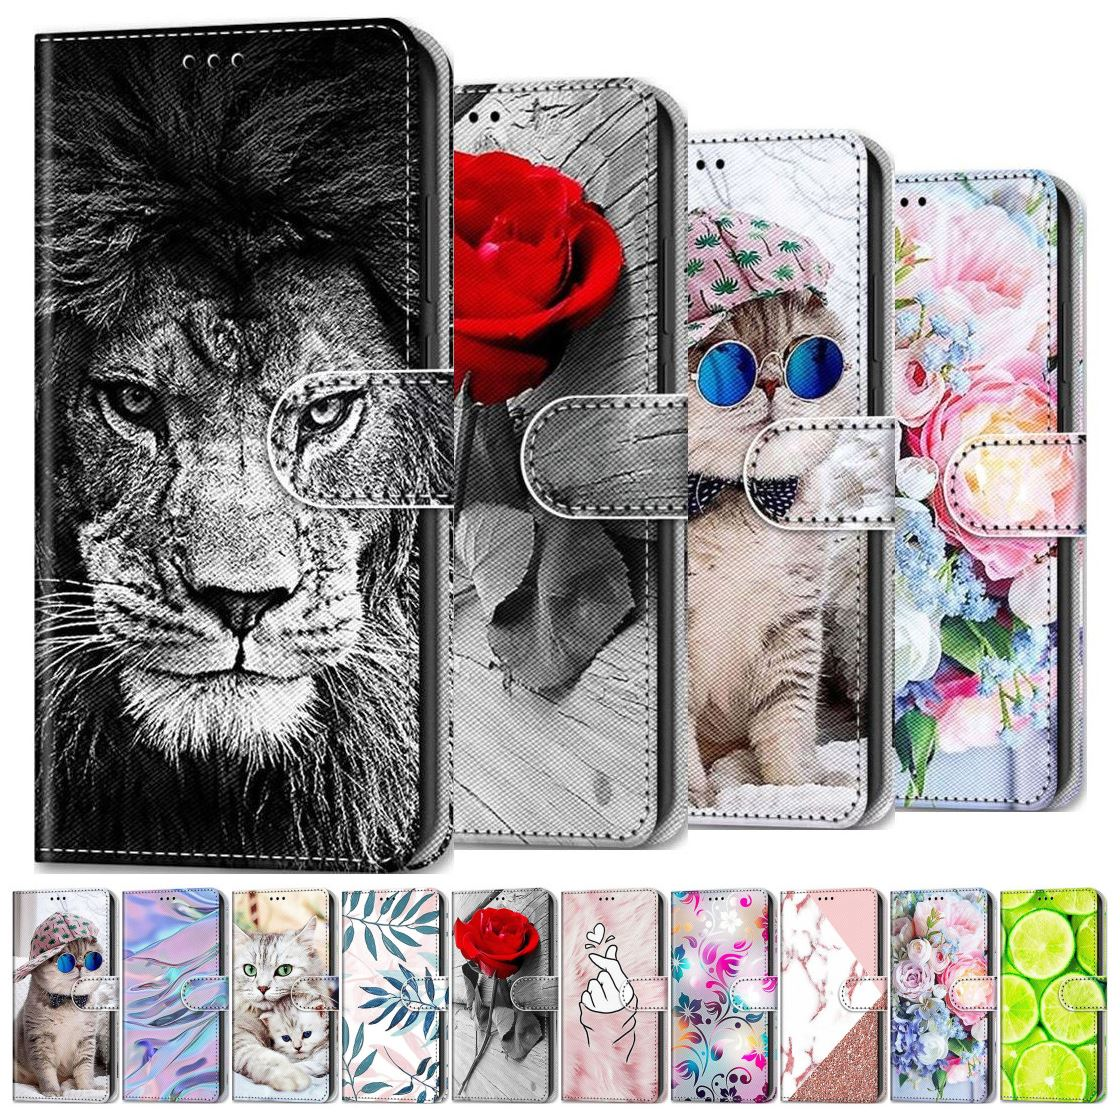 Rose Lion Painted Phone Shell For Etui Samsung Galaxy S21 Ultra S20 Fe S10E Note 20 Ultra 10 Plus Lo